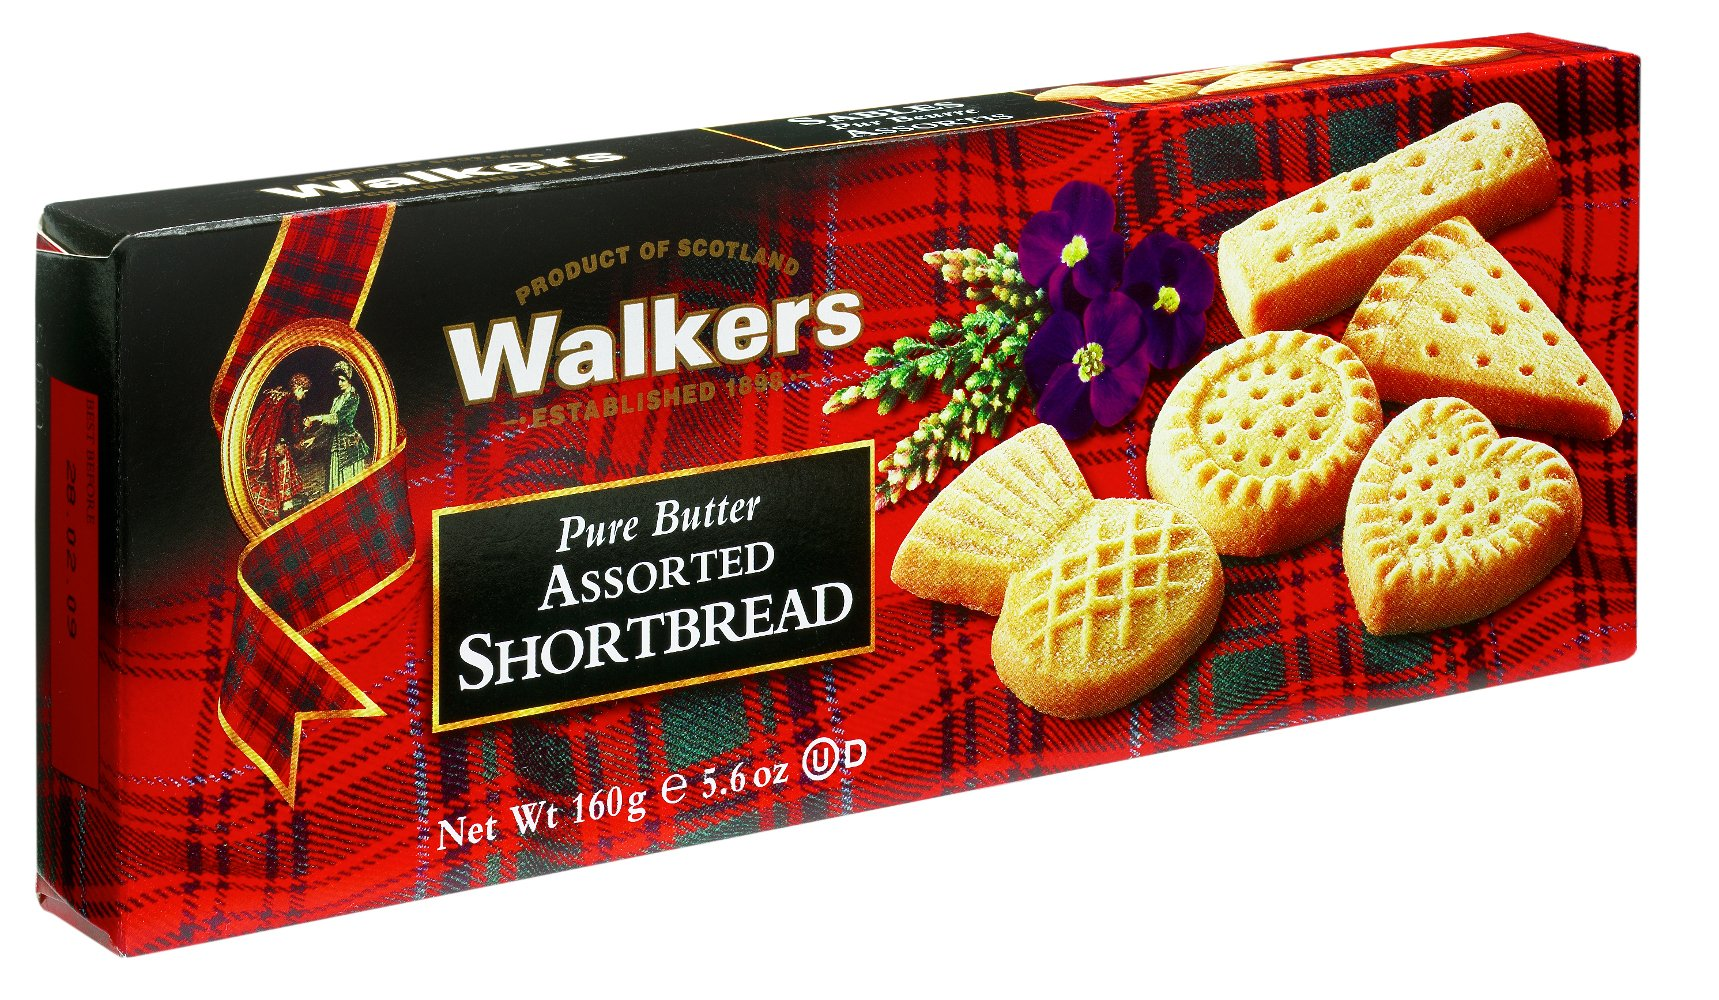 Walkers Shortbread Assorted Shortbread, Traditional Pure Butter Shortbread Cookies, 5.6-Ounce Boxes (4 Boxes) by Walkers Shortbread